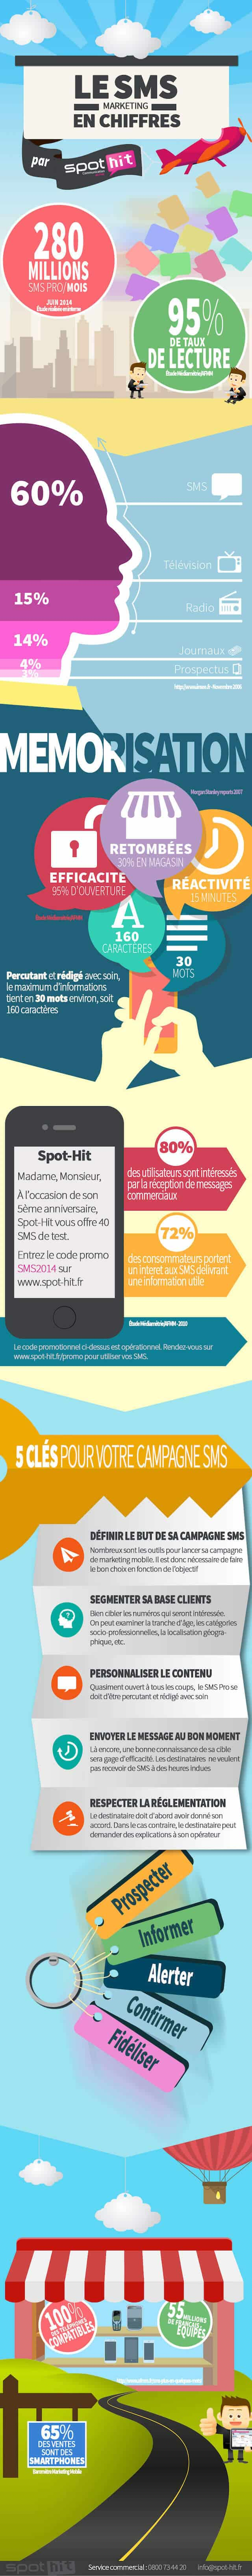 Infographie SMS Pro - Spot Hit